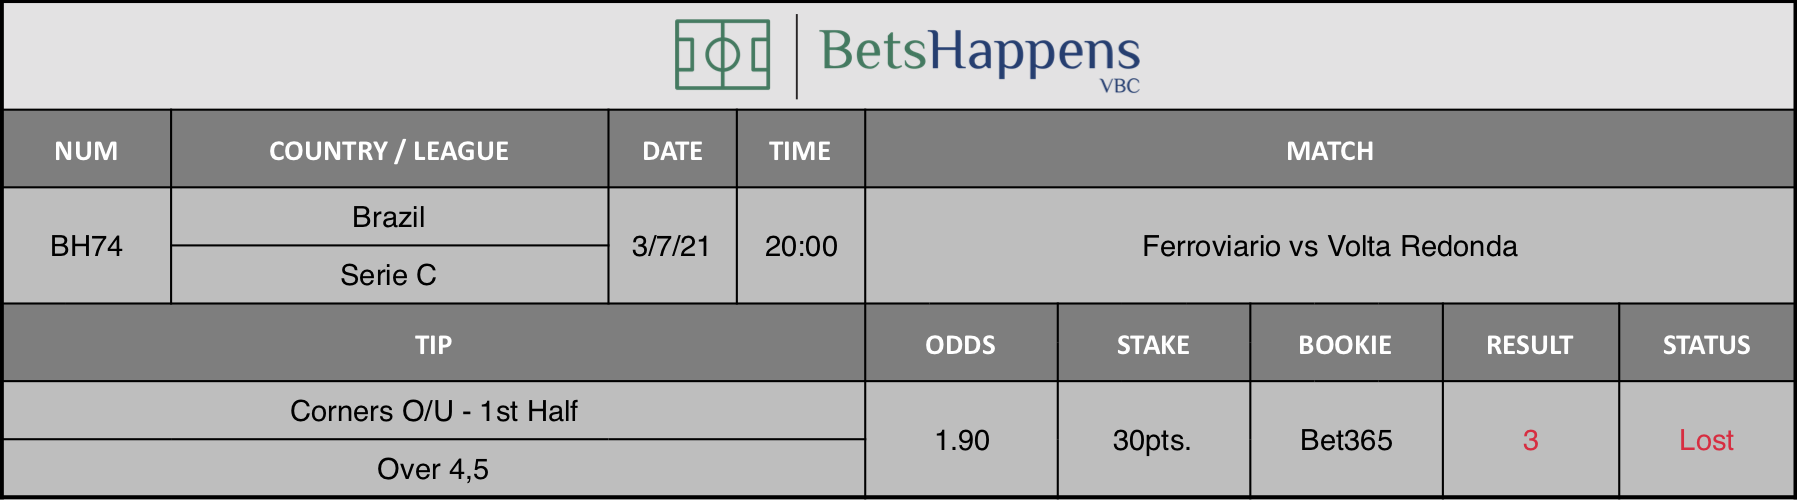 Results of our tip for the Ferroviario vs Volta Redonda match. Corners O/U - 1st Half  Over 4,5 is recommended.